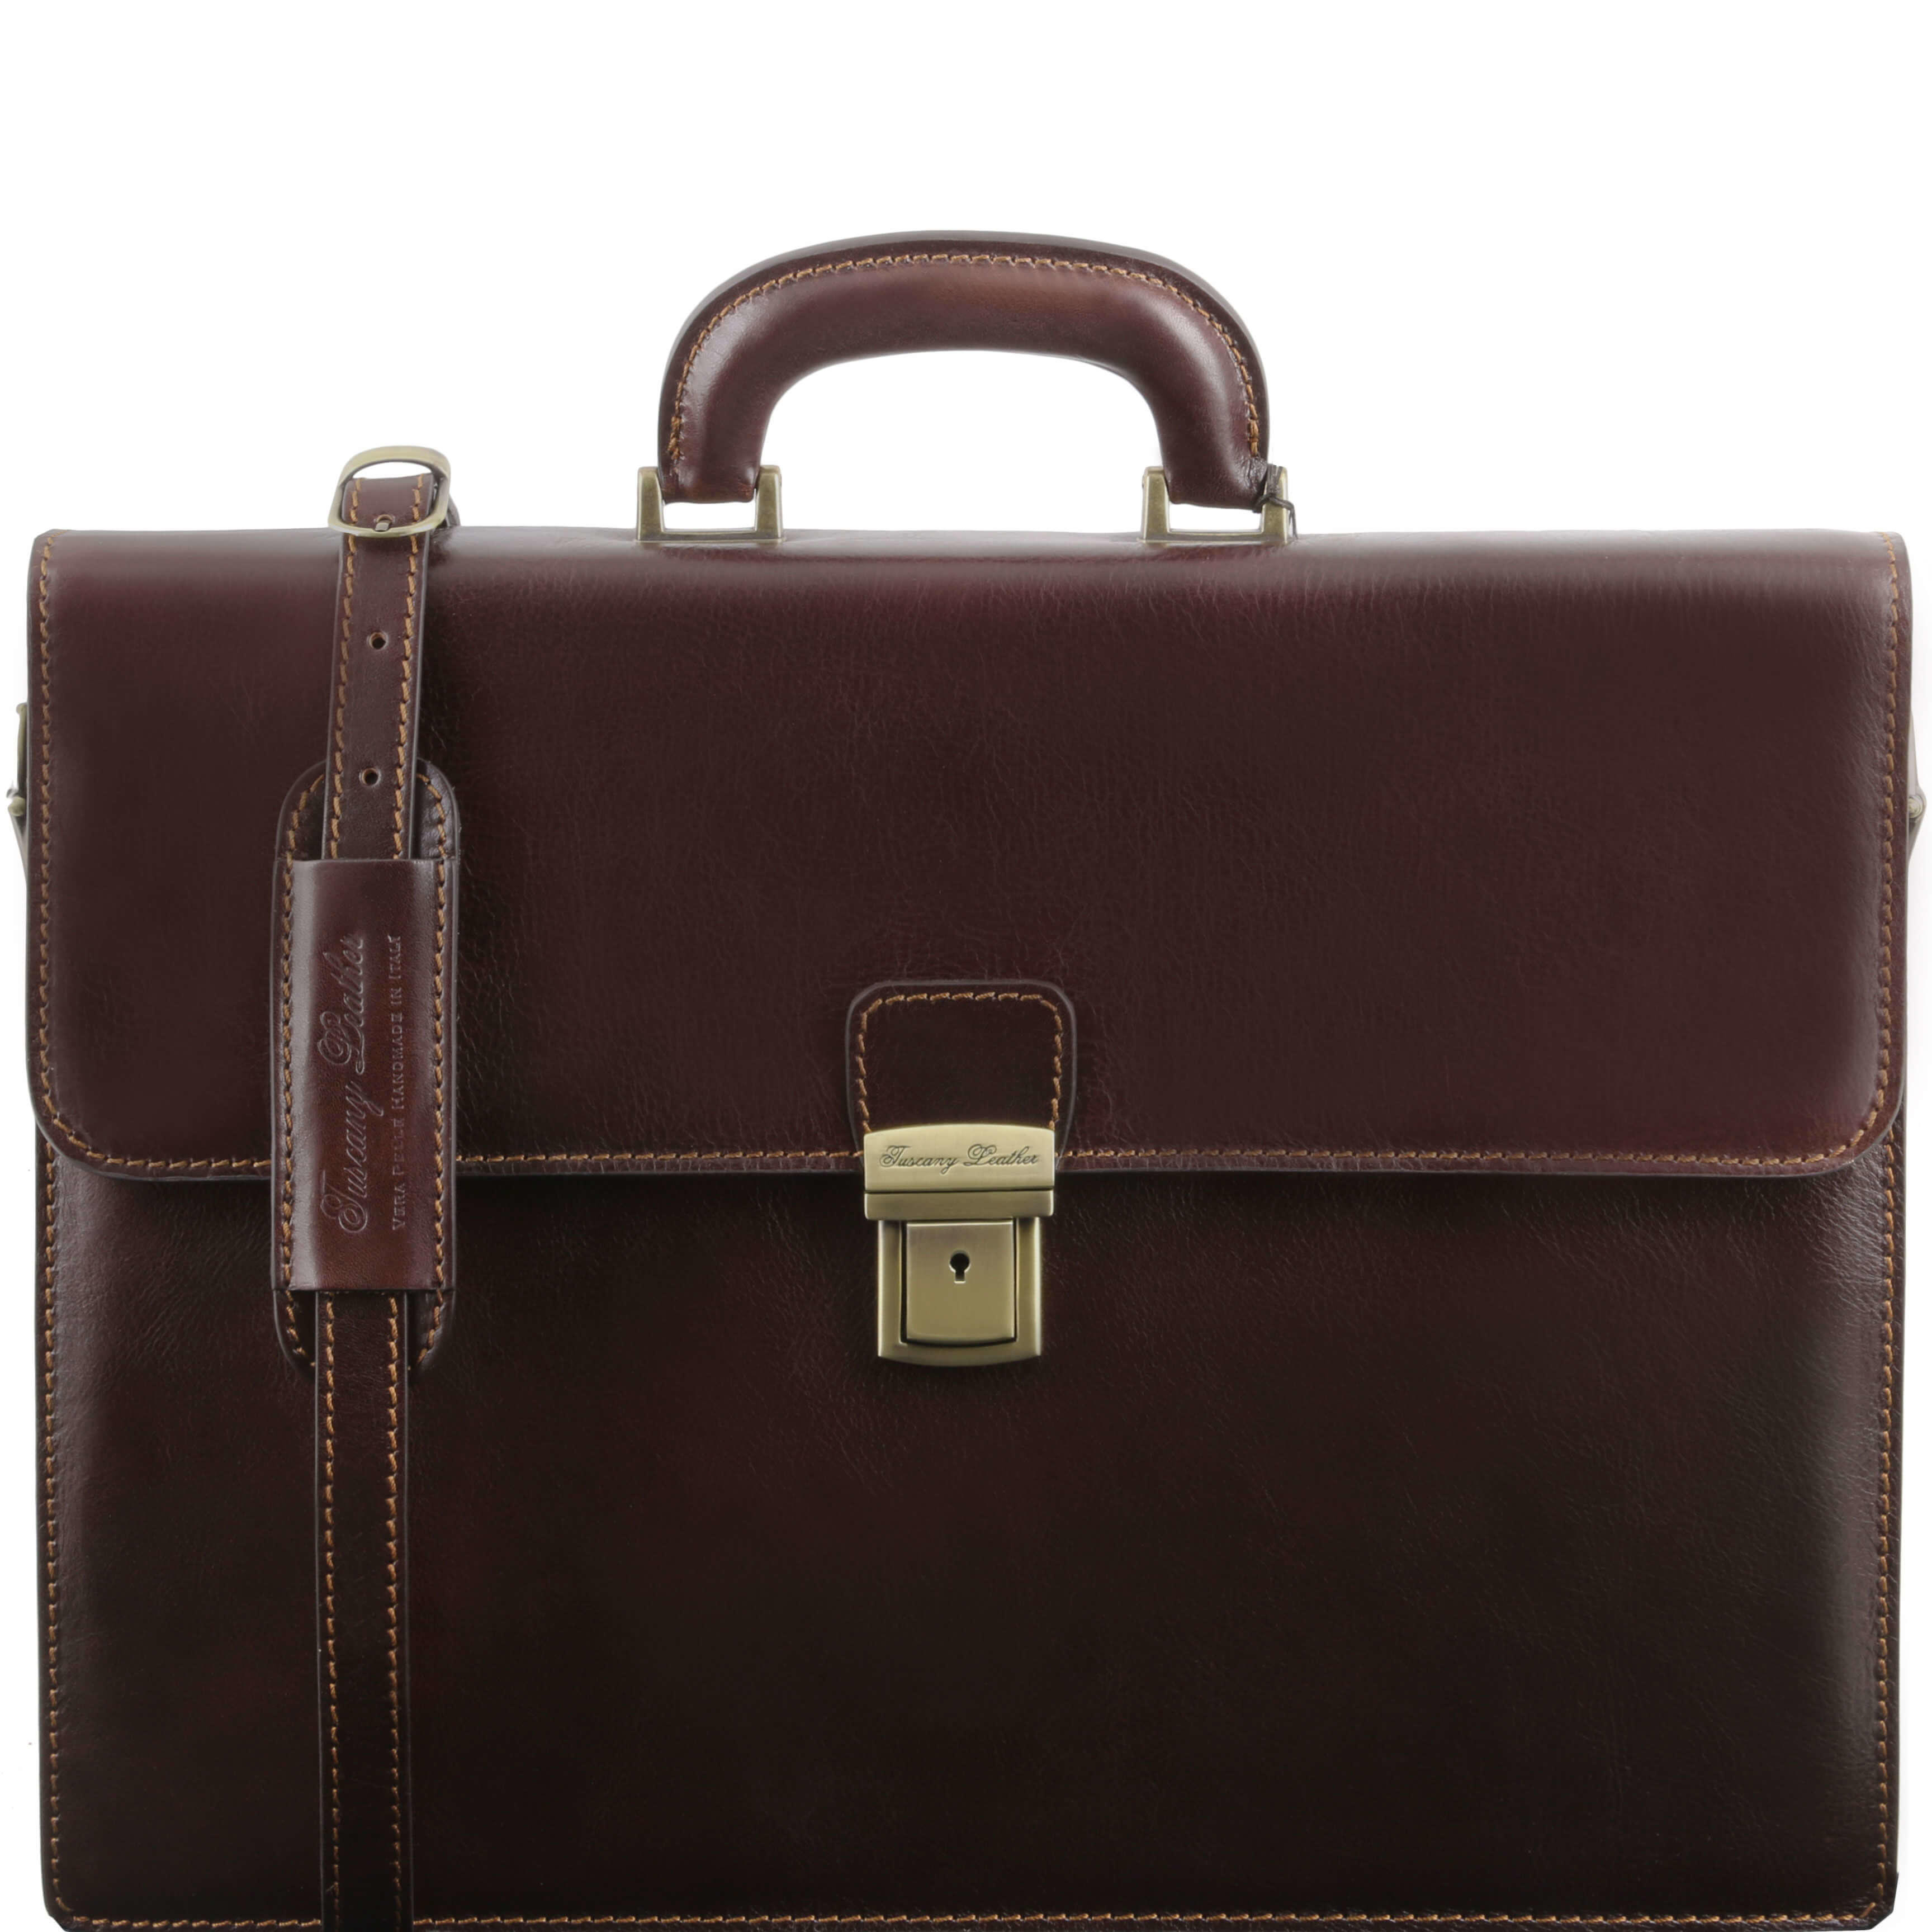 "TL141350 NEW Parma 2 Compartments Leather 15""Laptop-Briefcase-Bag & Shoulder Strap Dark Brown"